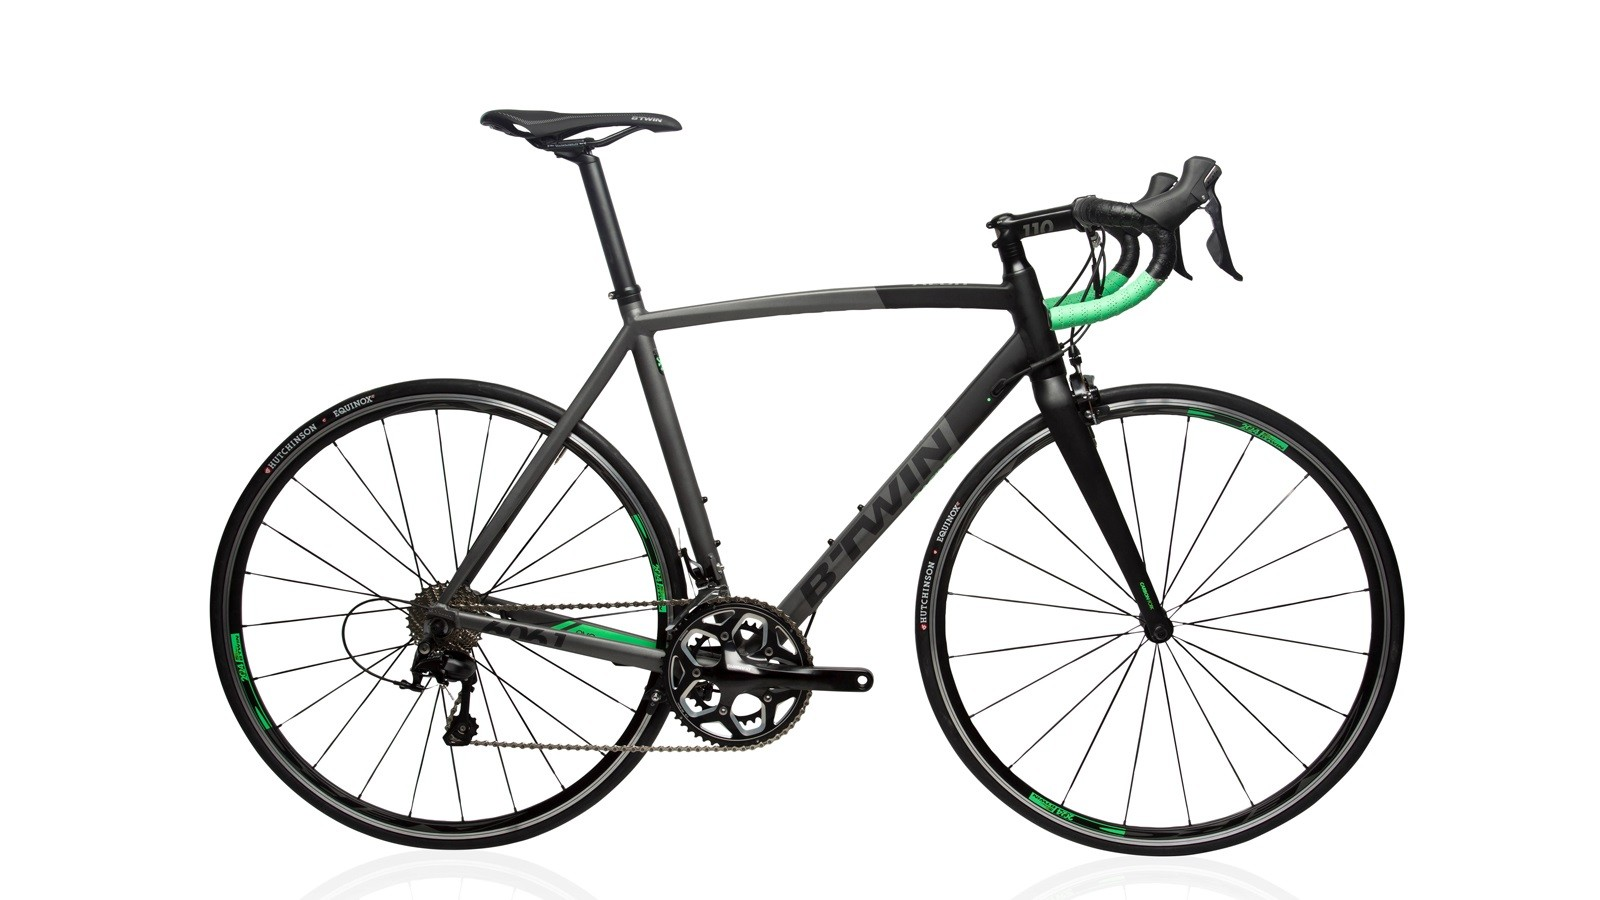 B'Twin's Ultra 700 AF road bike features an alloy frame and fork and a 105 drivetrain for £599 in the UK